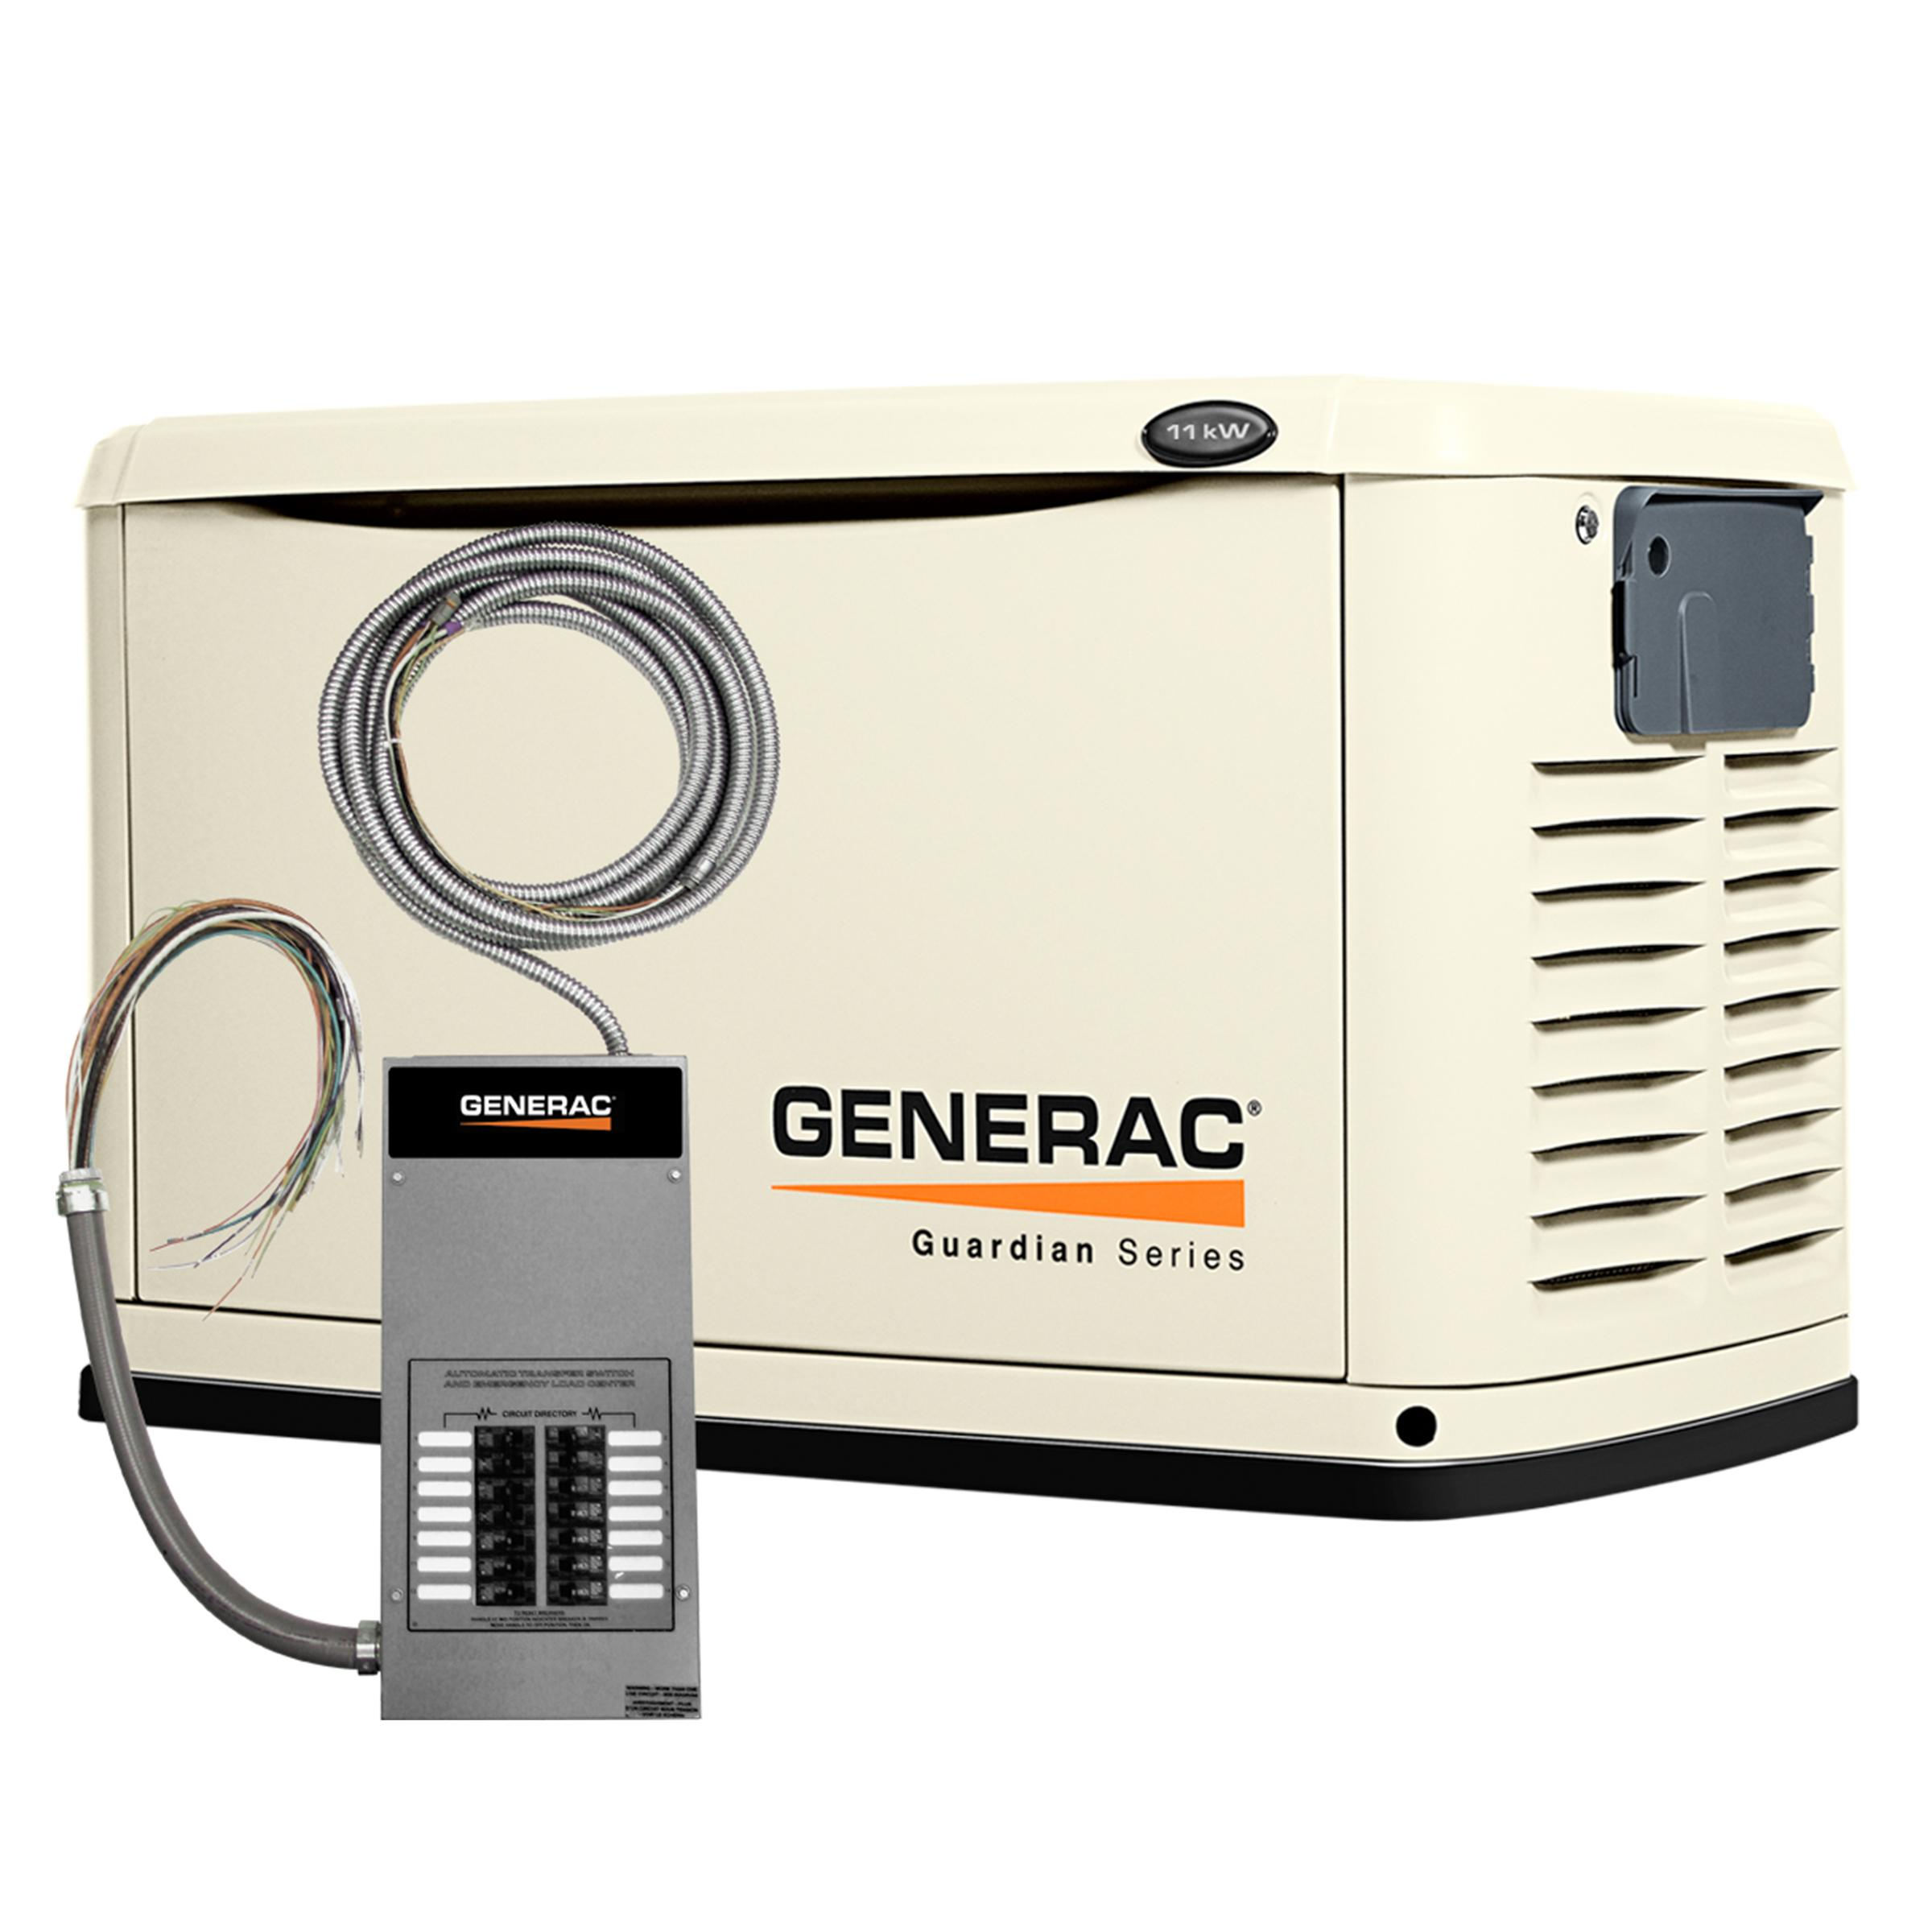 Amazon.com : Generac 6439 Guardian Series, 11kW Air Cooled Standby ...